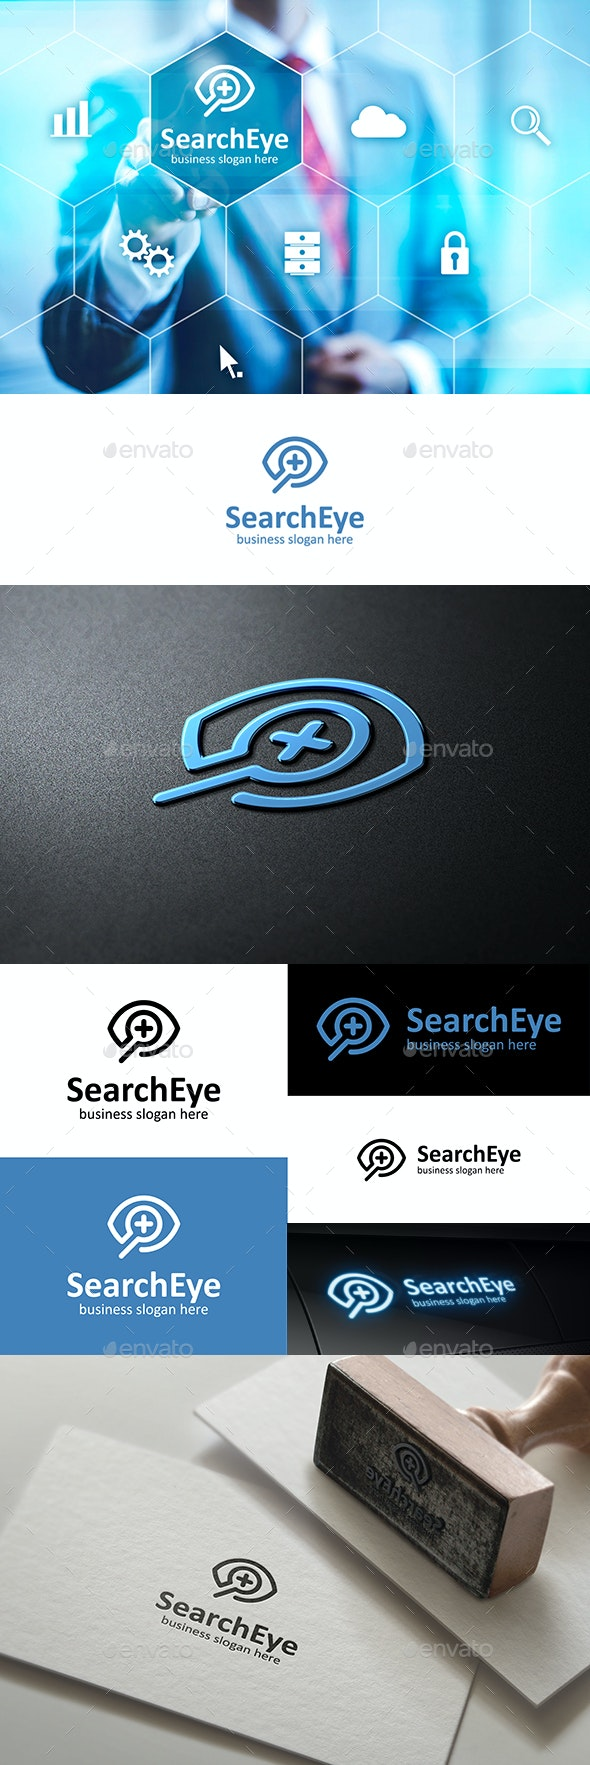 Search Eye Logo with Magnifying Glass Outline - Symbols Logo Templates